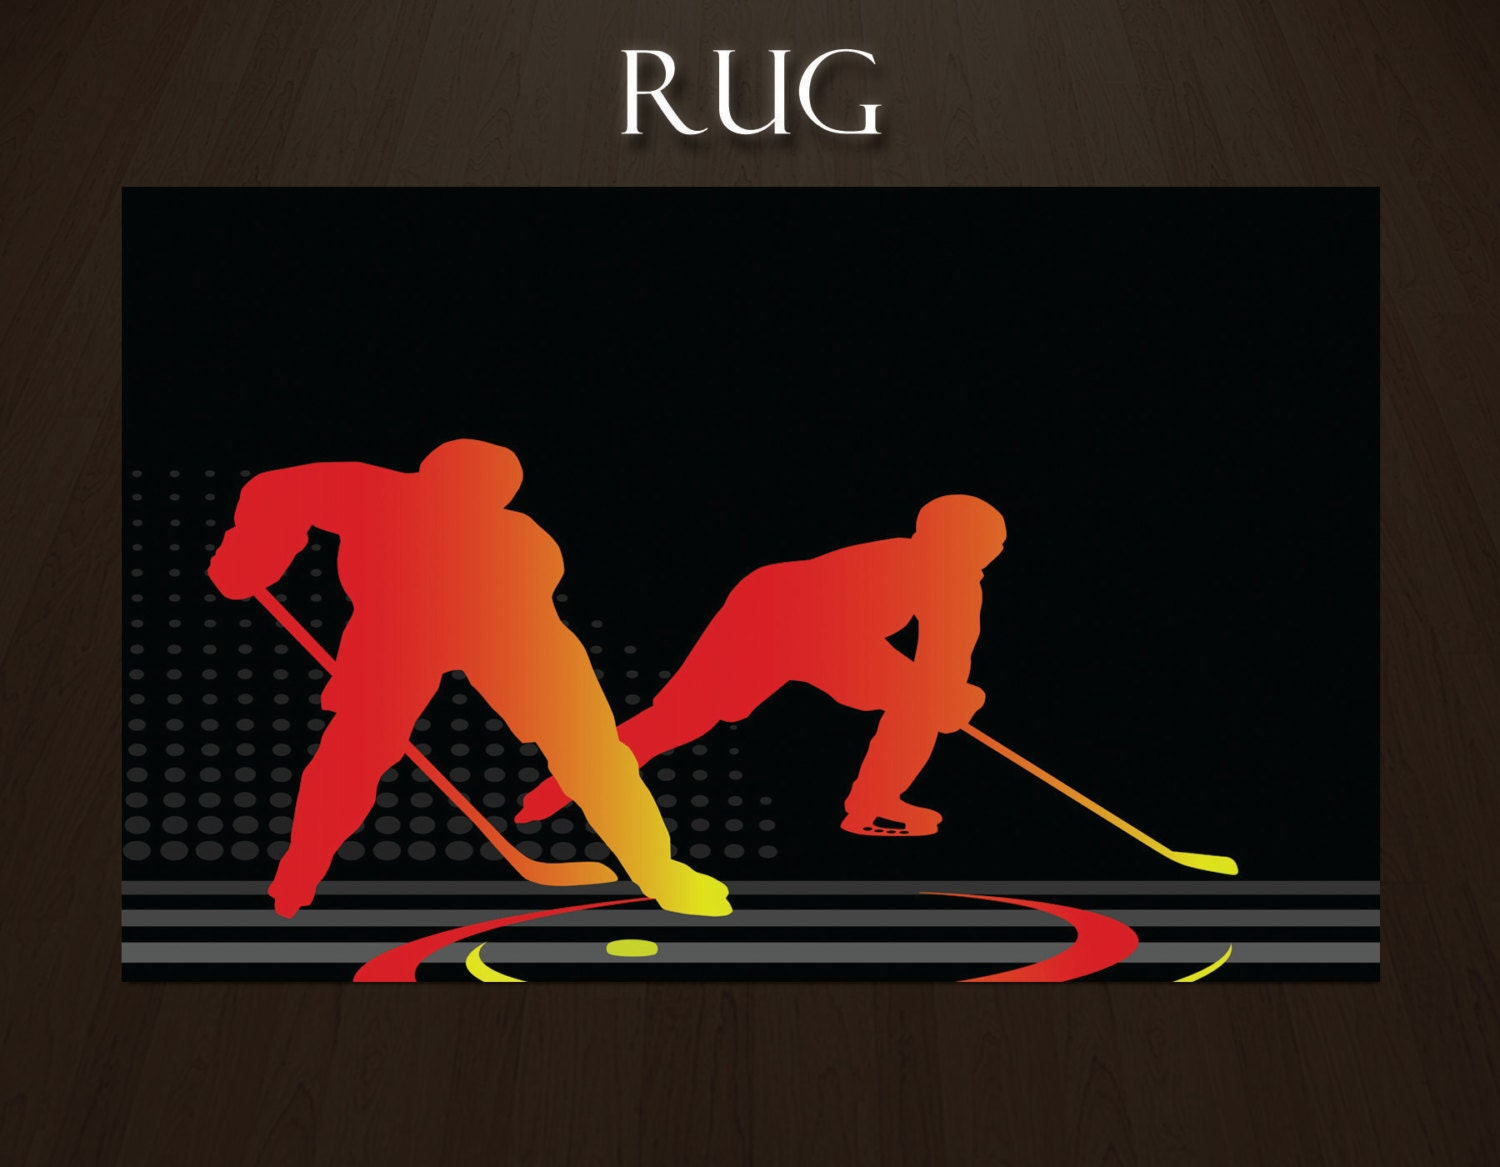 hockey rugs boys room rugs sports area rugs by eloquentinnovations. Black Bedroom Furniture Sets. Home Design Ideas